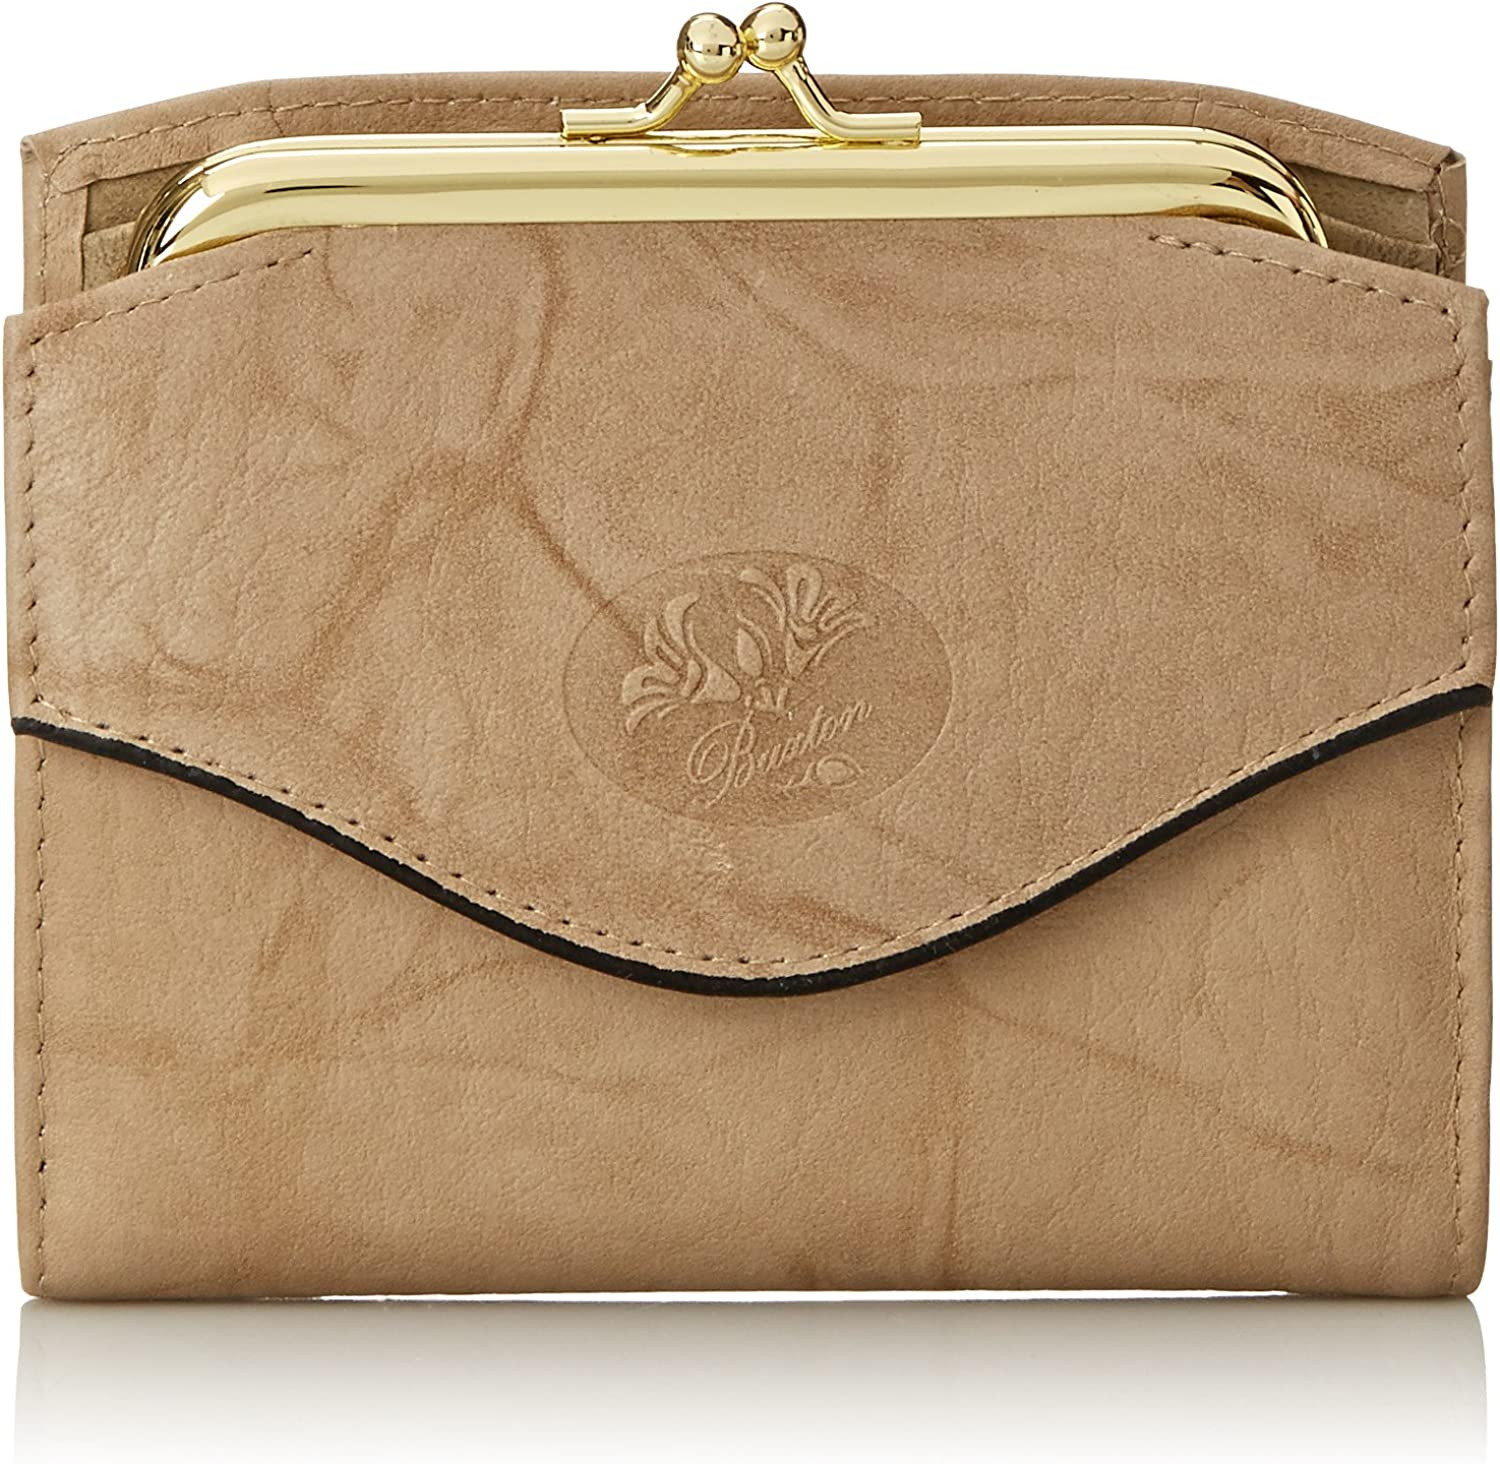 Buxton Heiress French Purse...